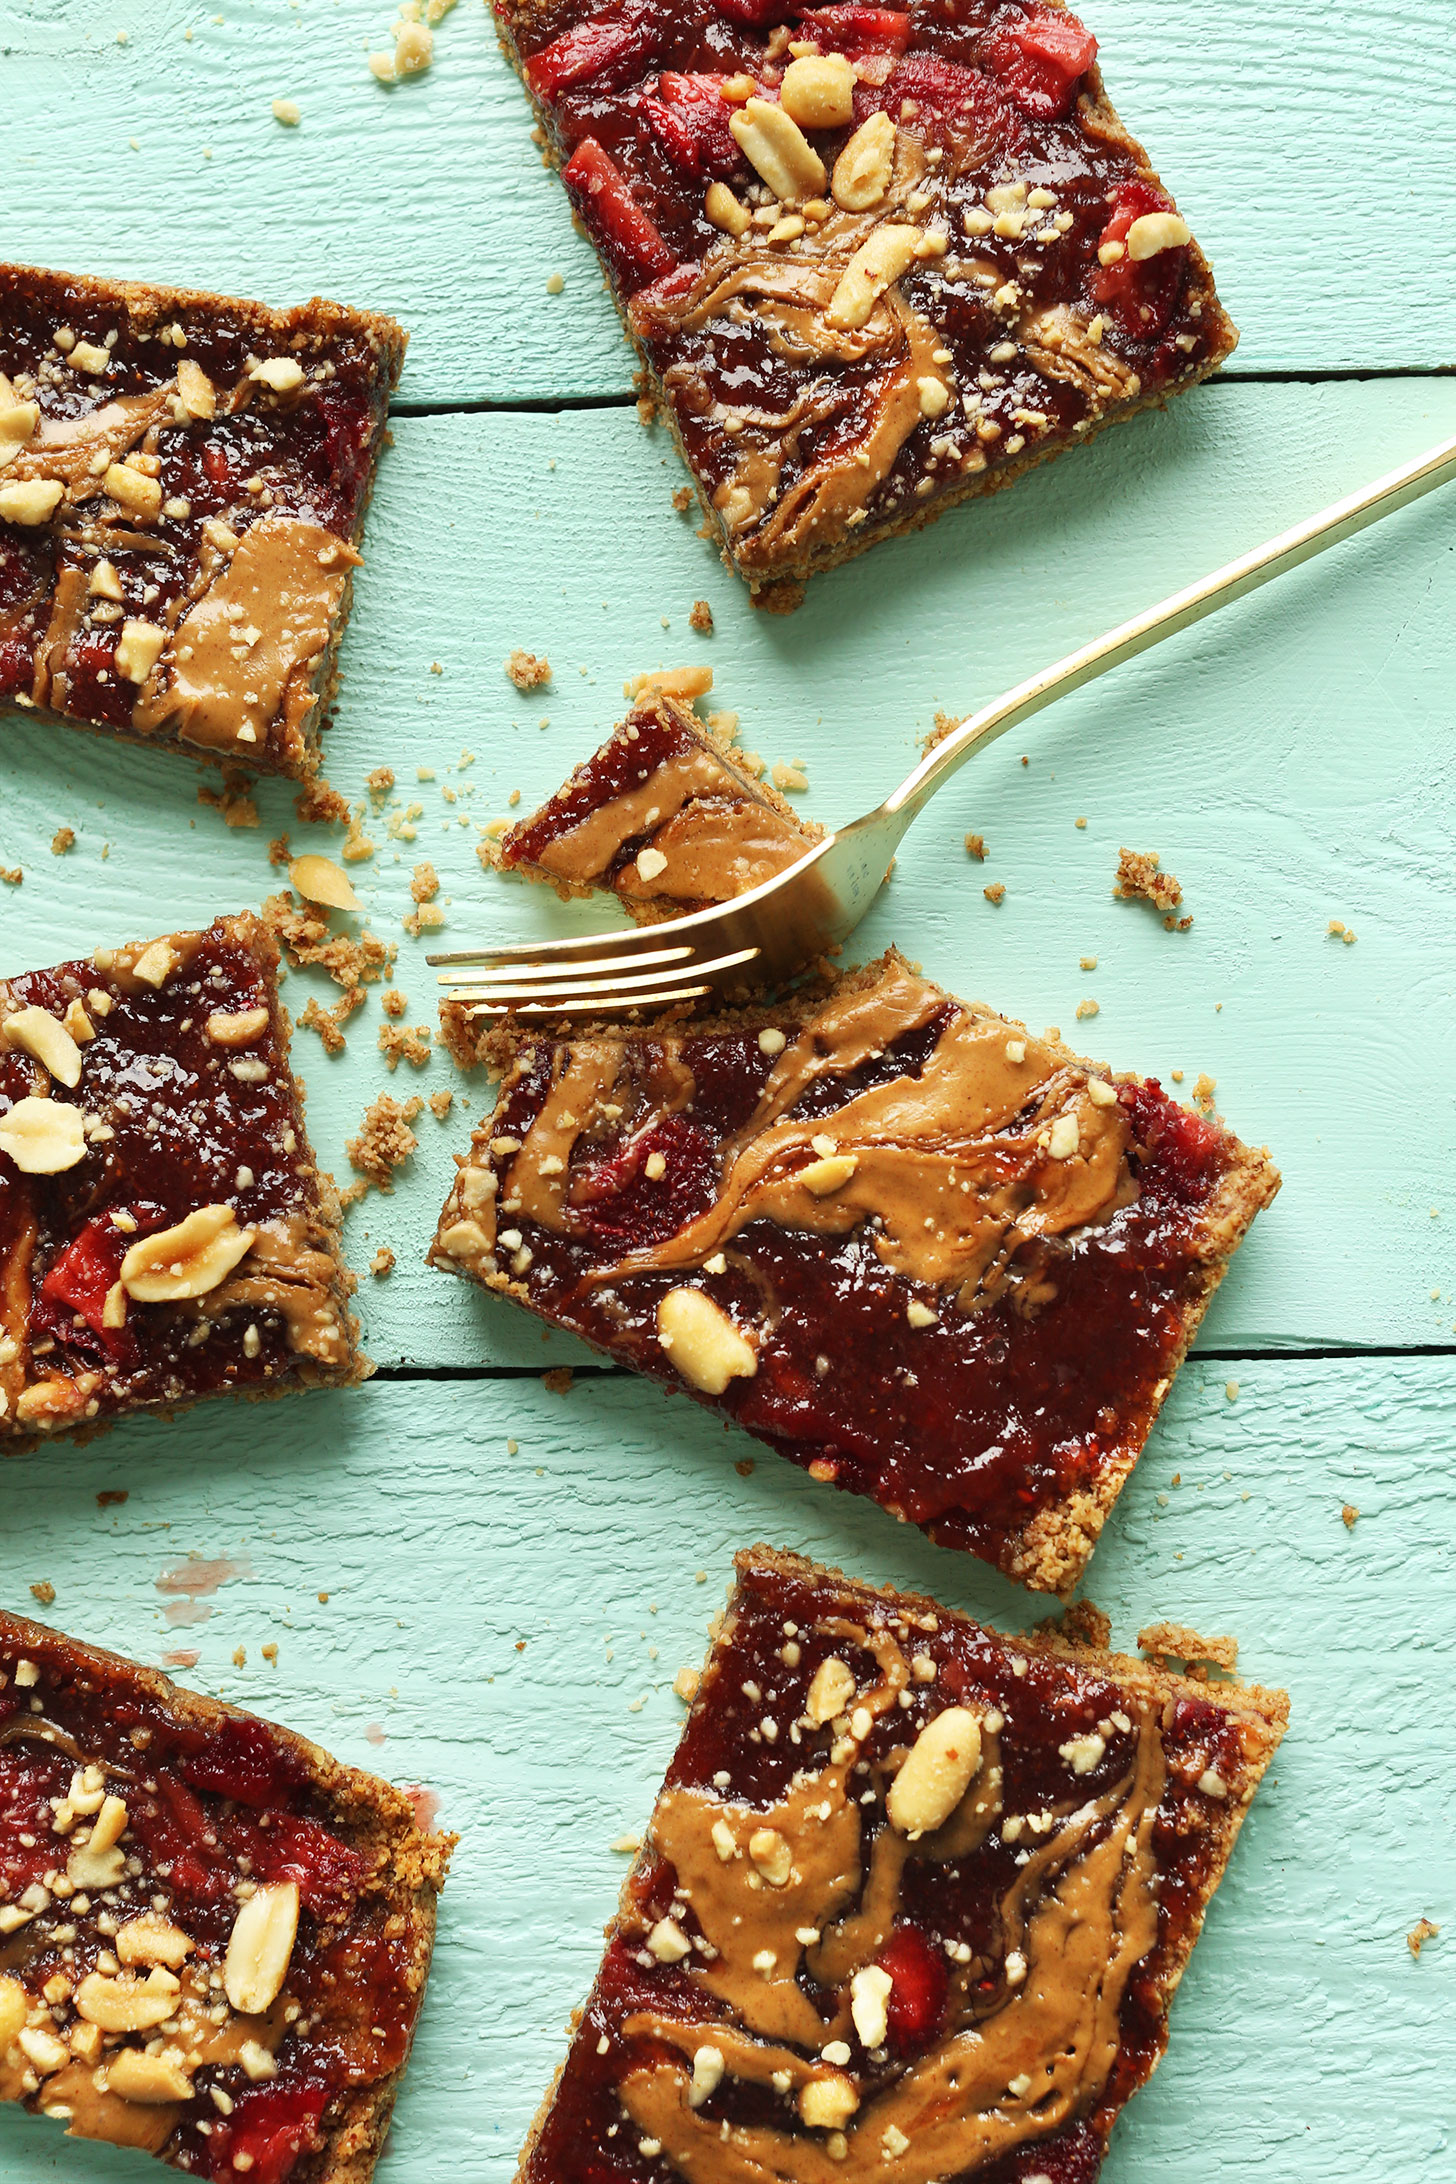 CRAZY Delicious Vegan GF PB&J Oat Bars! 8 ingredients, wholesome, SO delicious! #vegan #glutenfree #pbj #snack #healthy #minimalistbaker